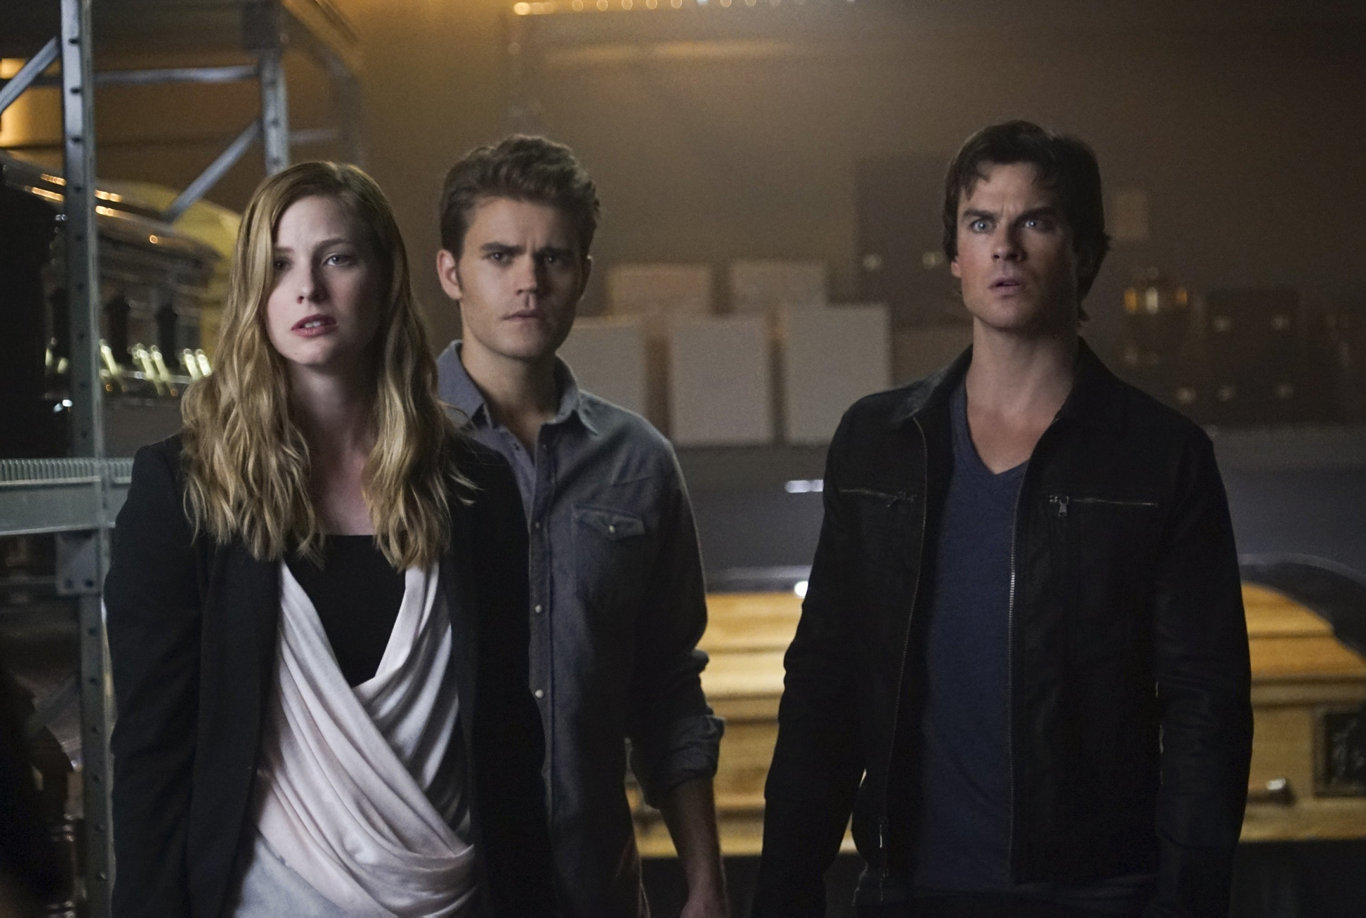 Australian actor Elizabeth Blackmore with Ian Somerhalder and Paul Wesley in a scene from the TV series The Vampire Diaires.